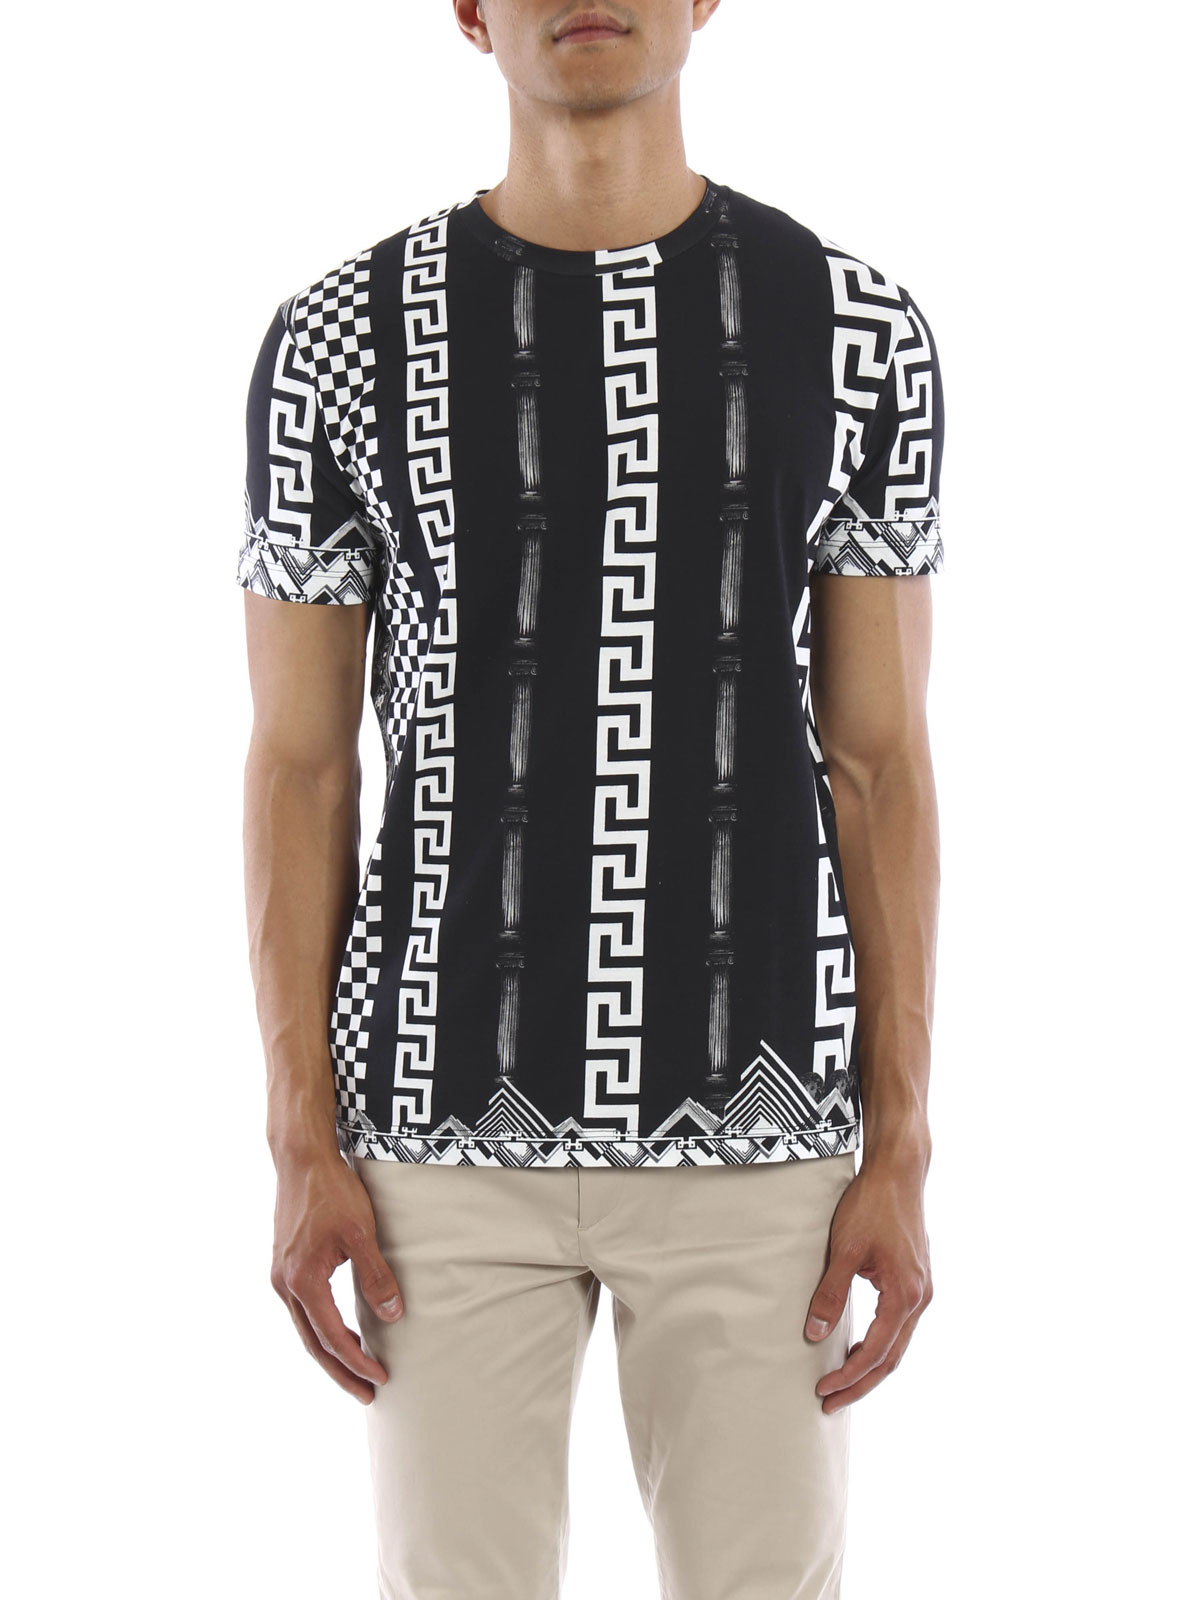 Ancient greece printed t shirt by versus versace t for Online printed t shirts